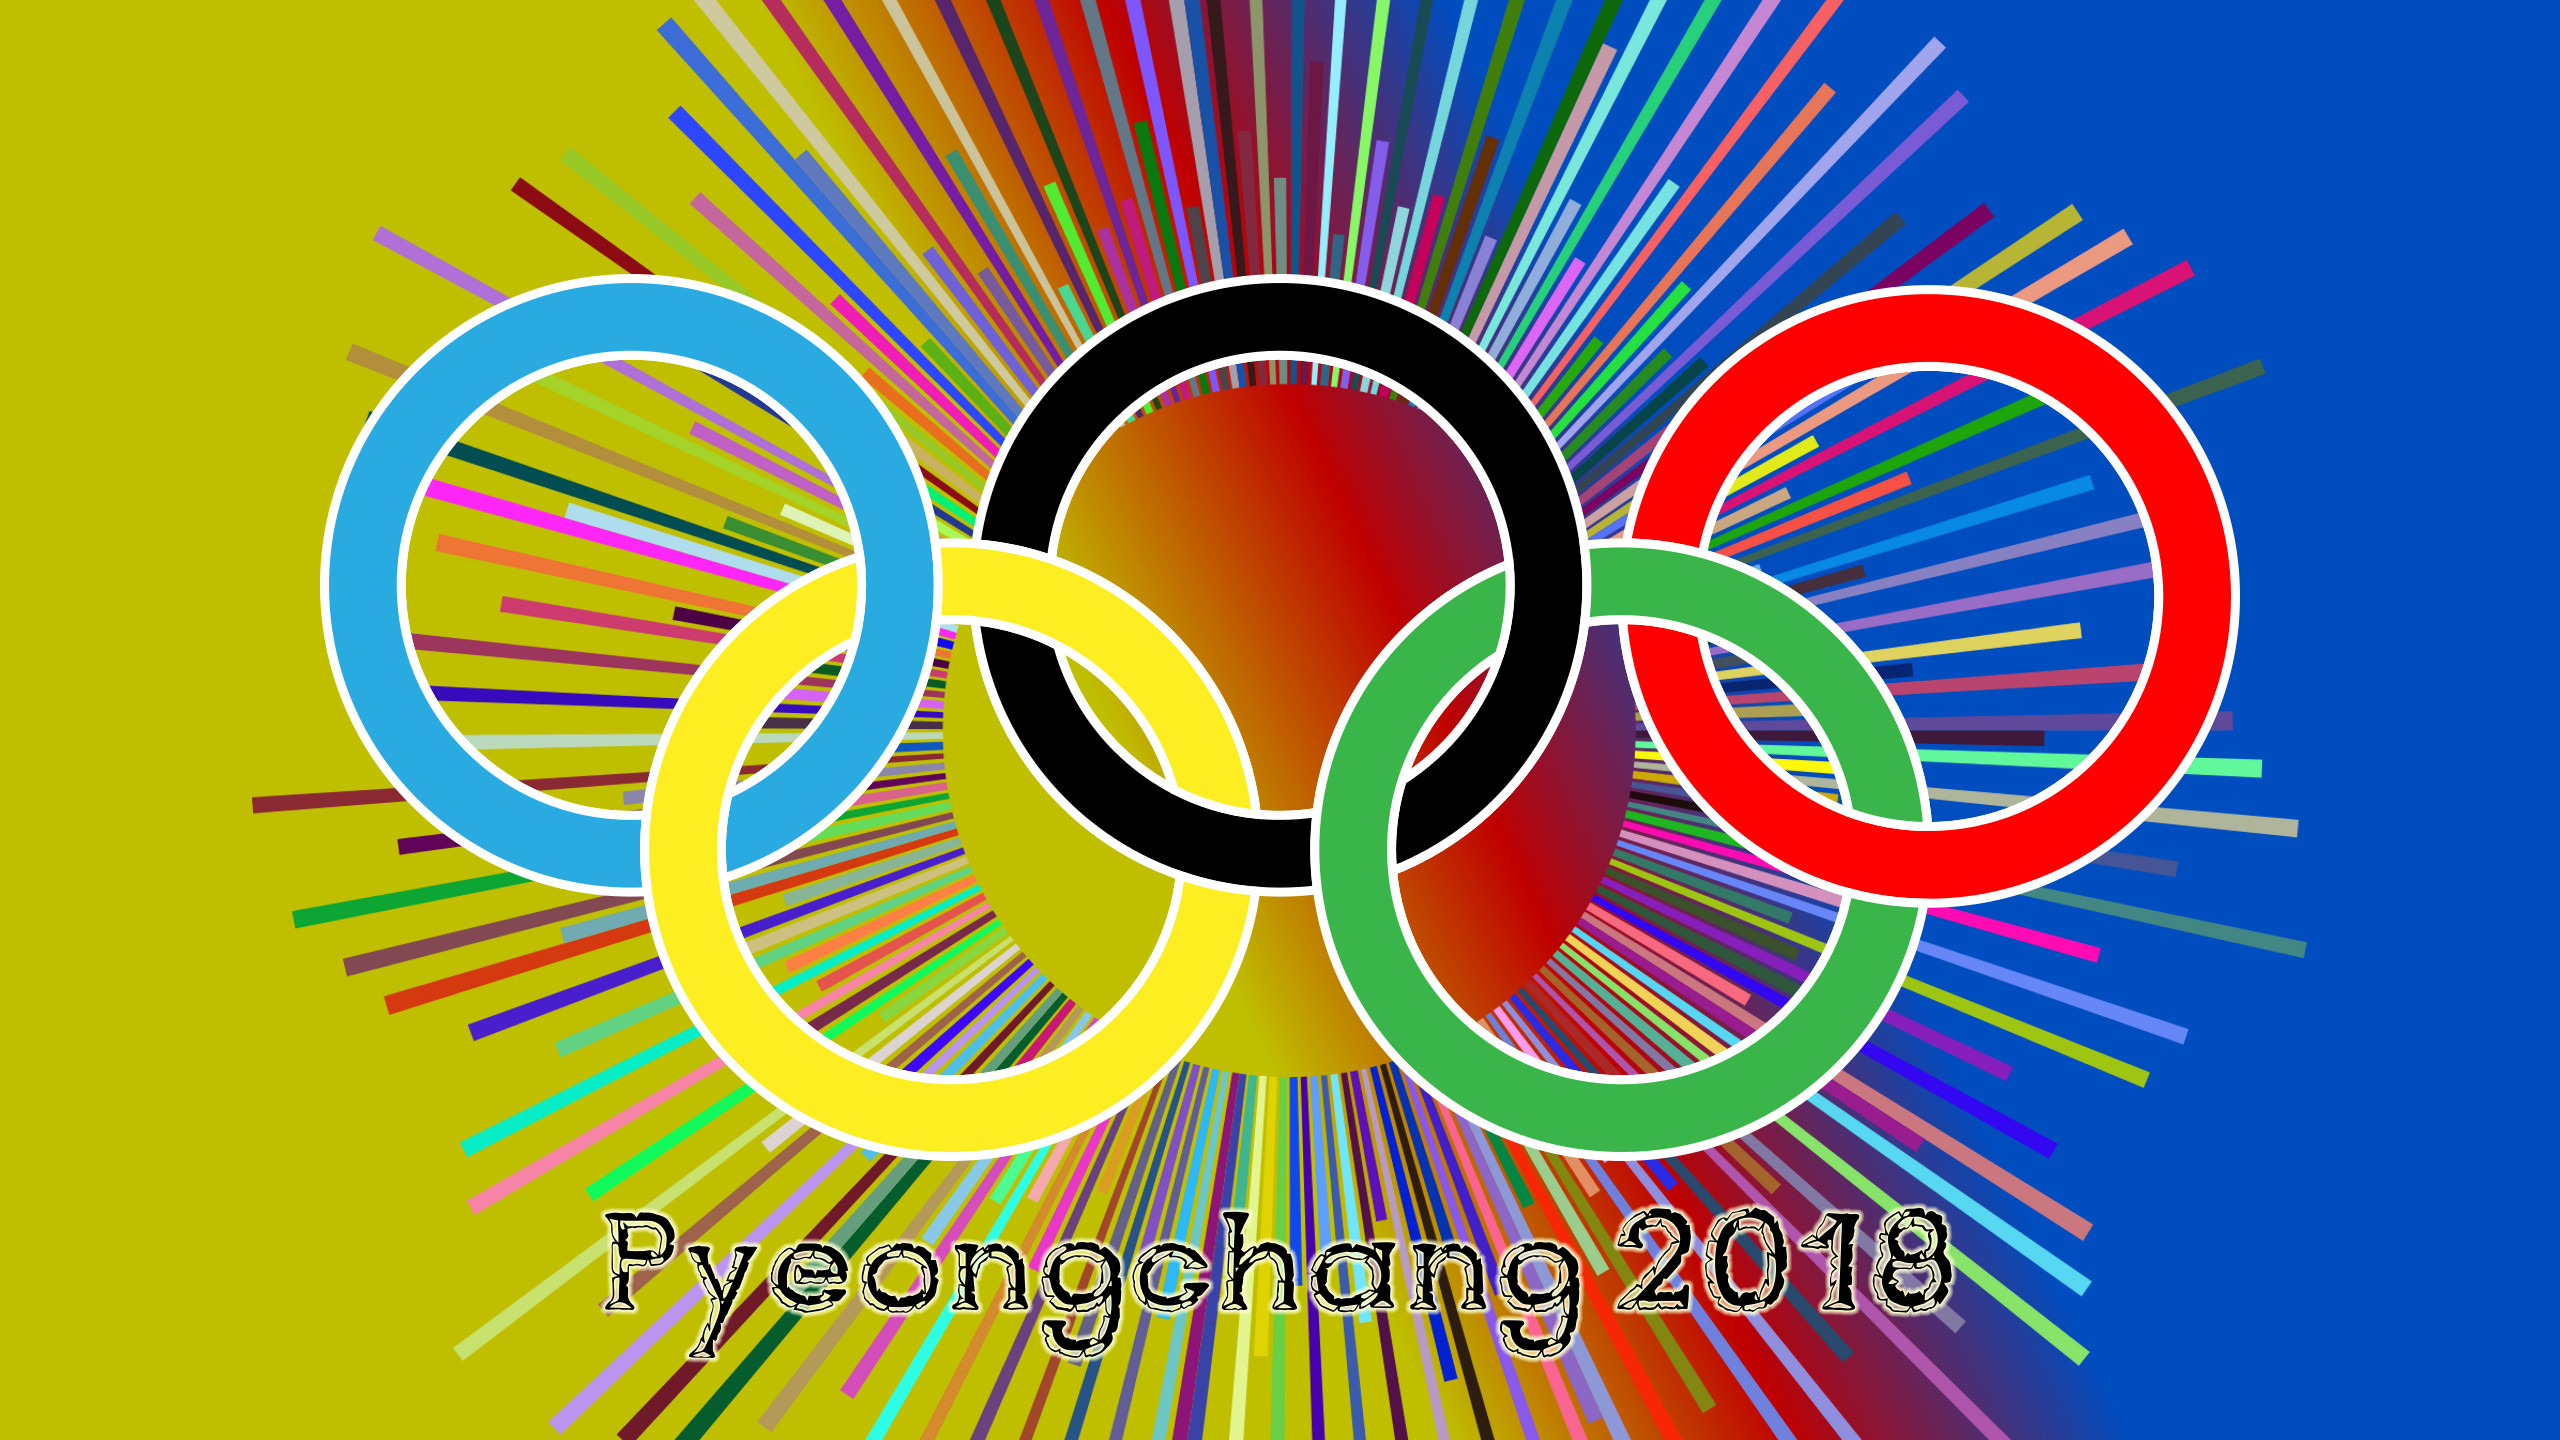 Pyeongchang 2018 Olympic Wintergames